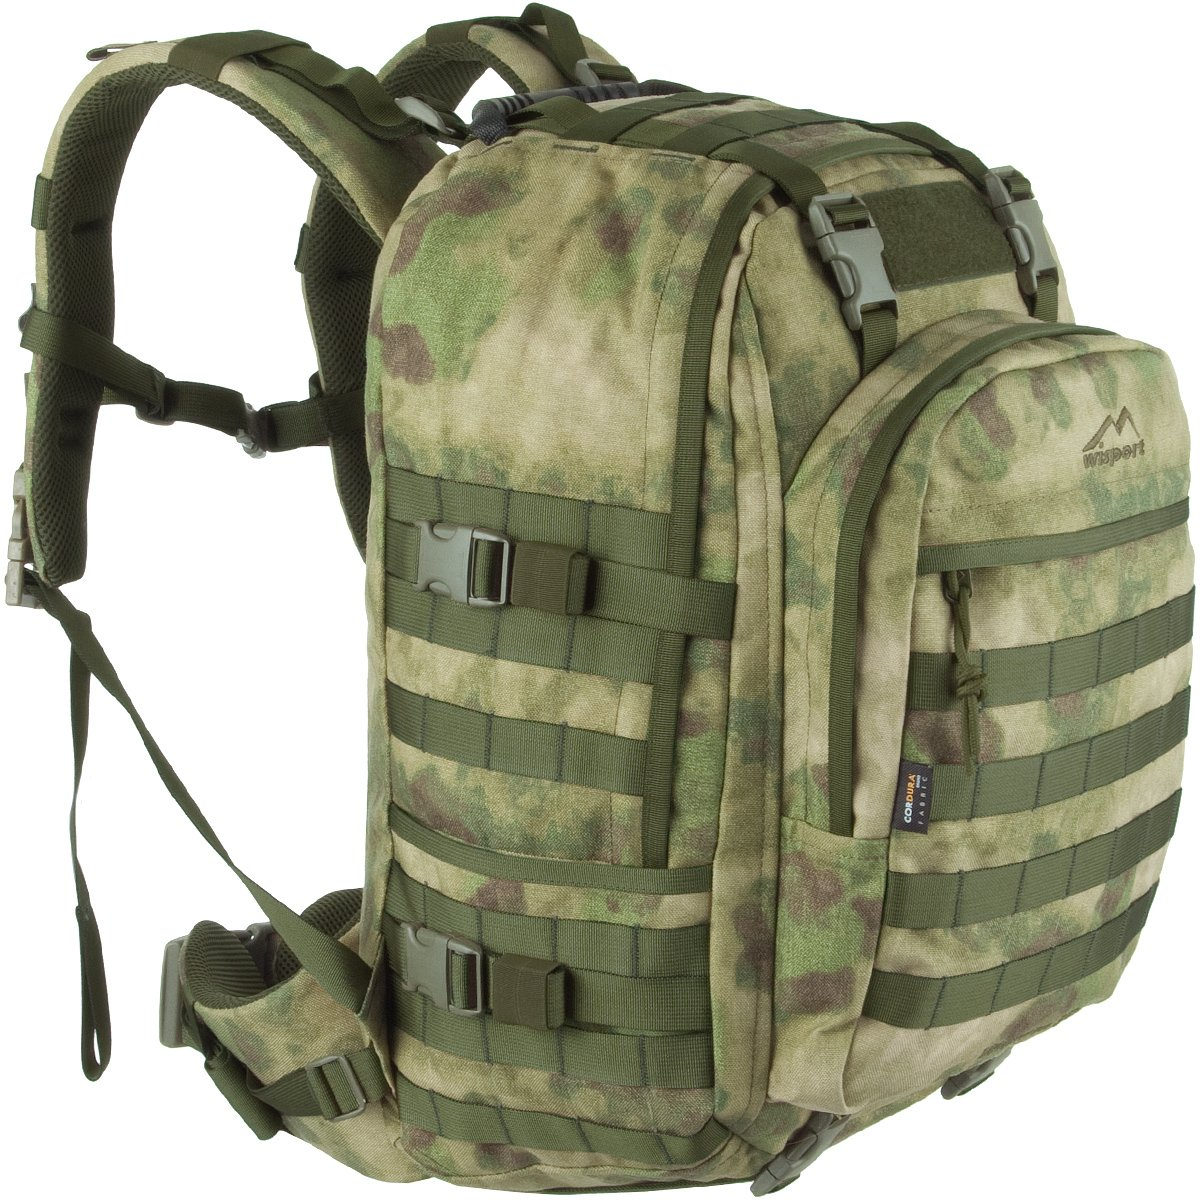 Wisport Whistler 35L Rucksack A-TACS FG